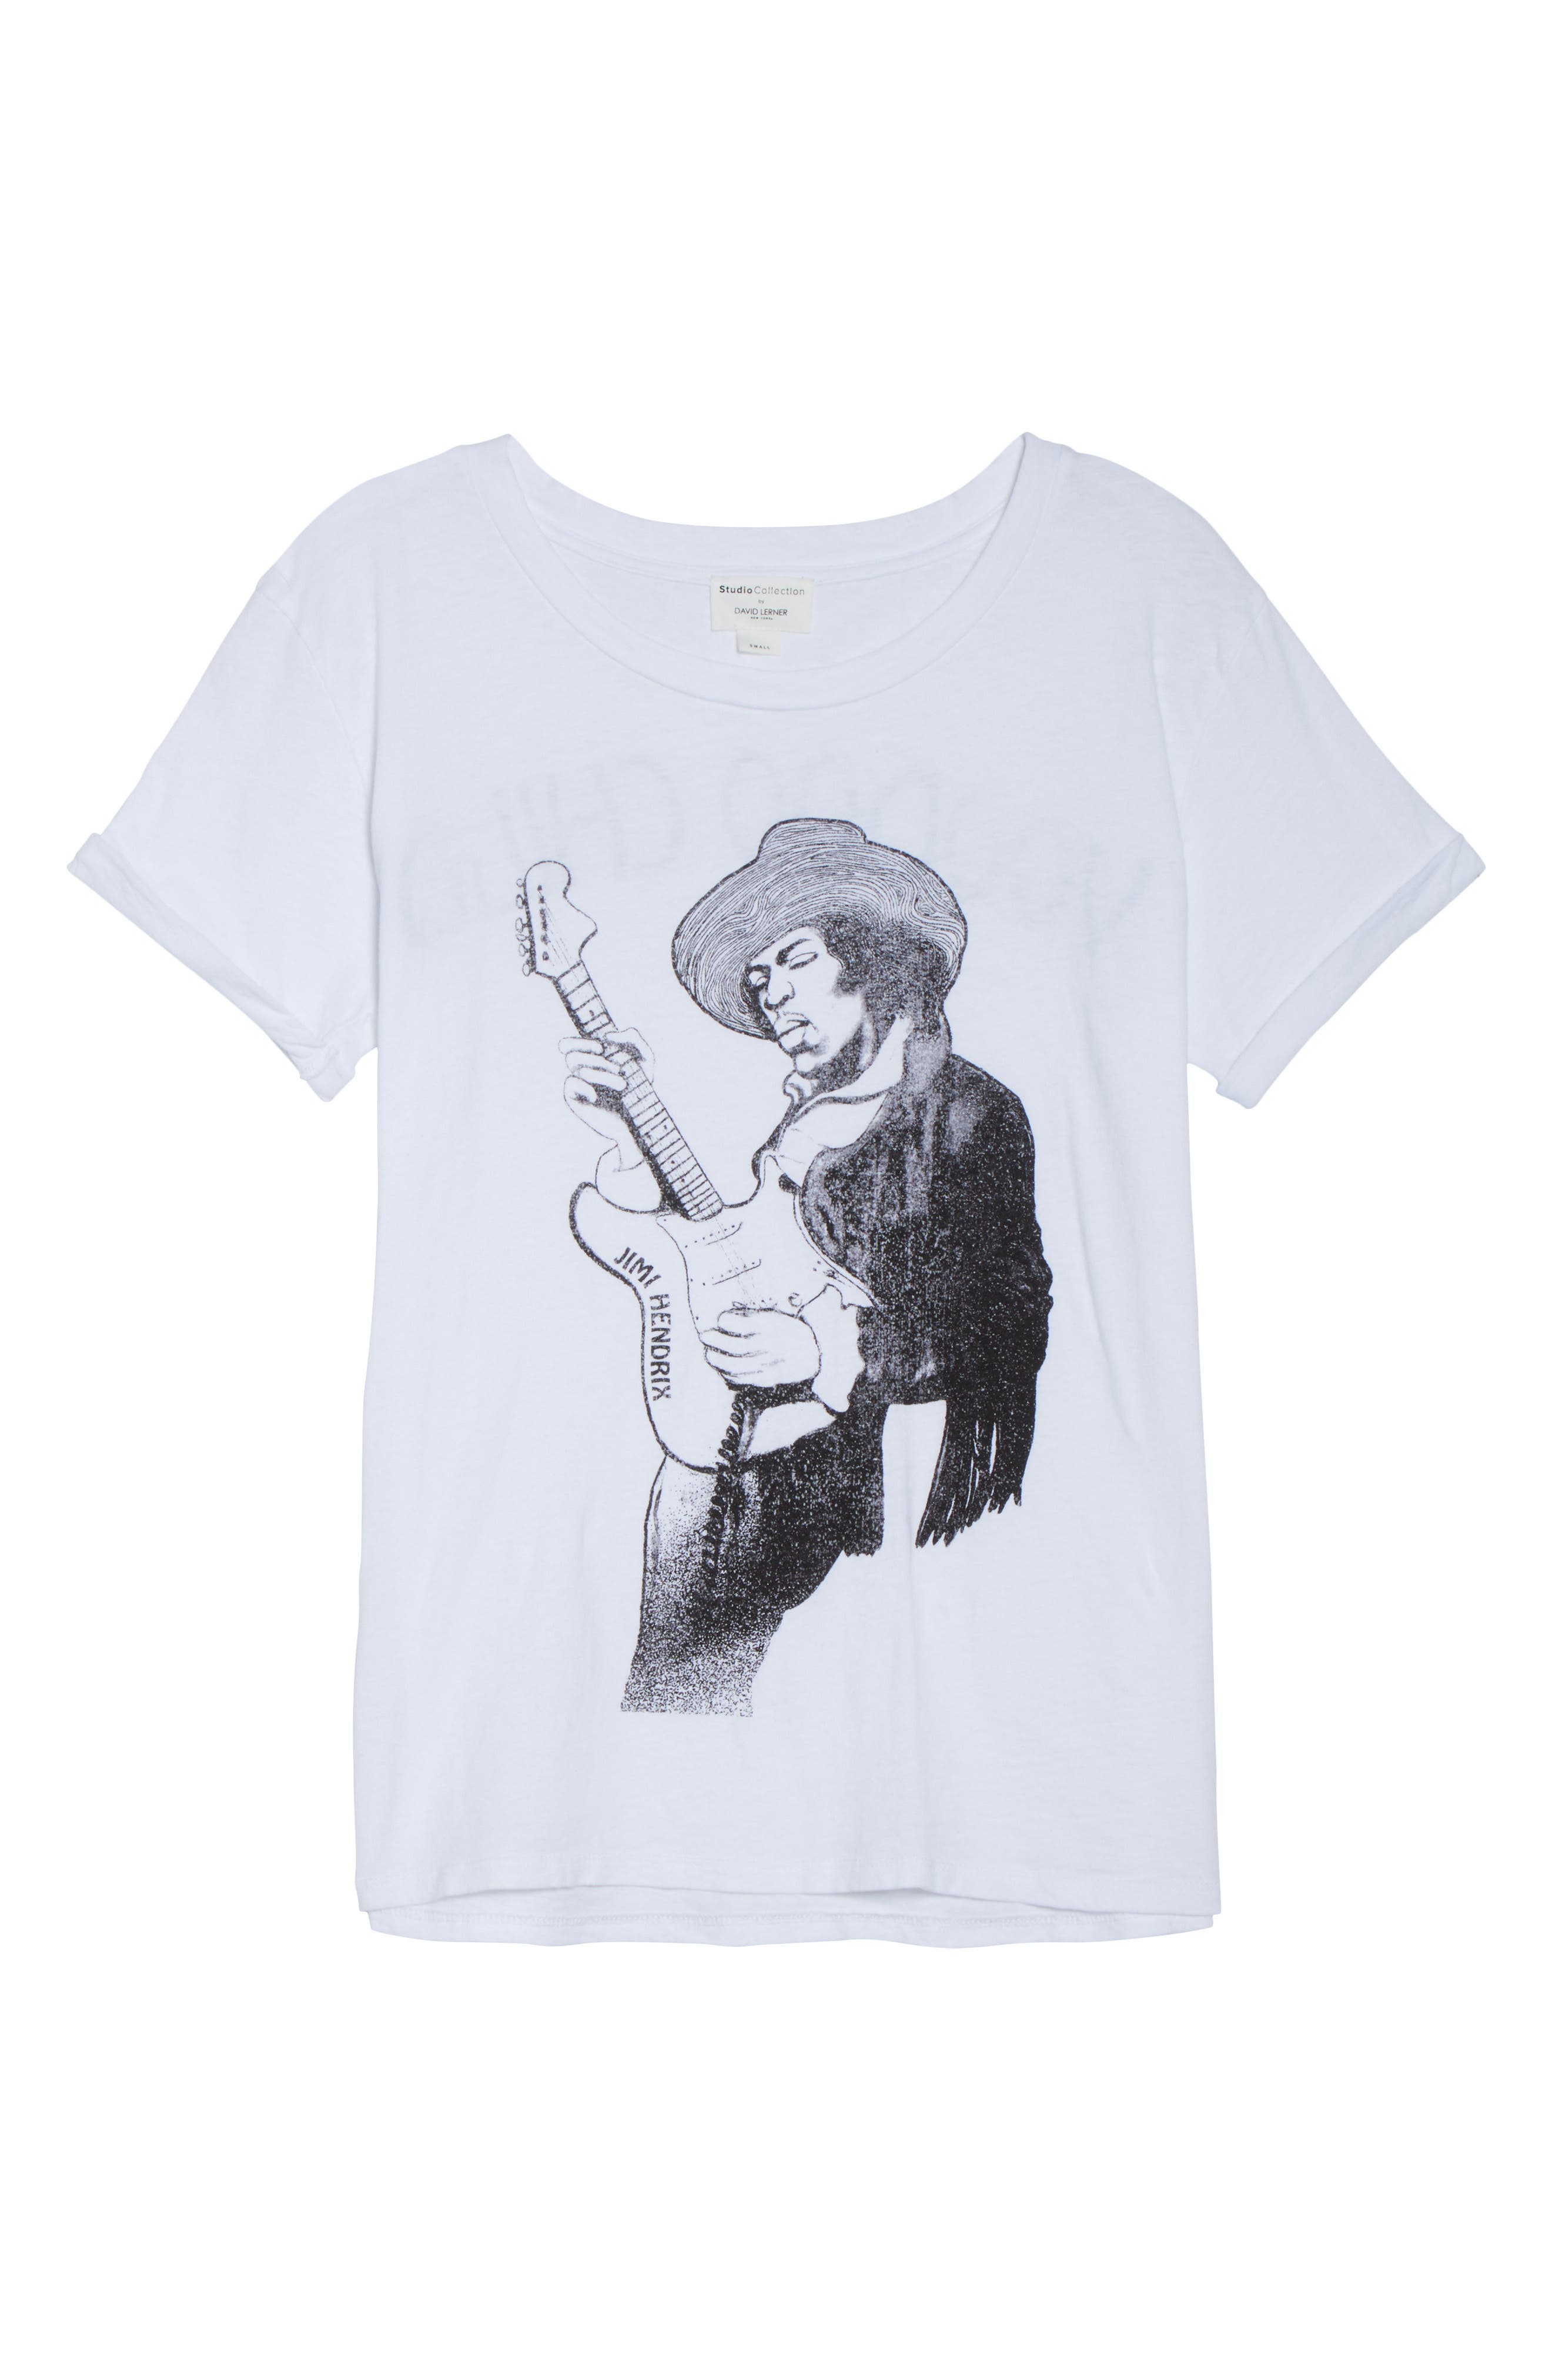 Jimi Hendrix Tee,                             Alternate thumbnail 6, color,                             108